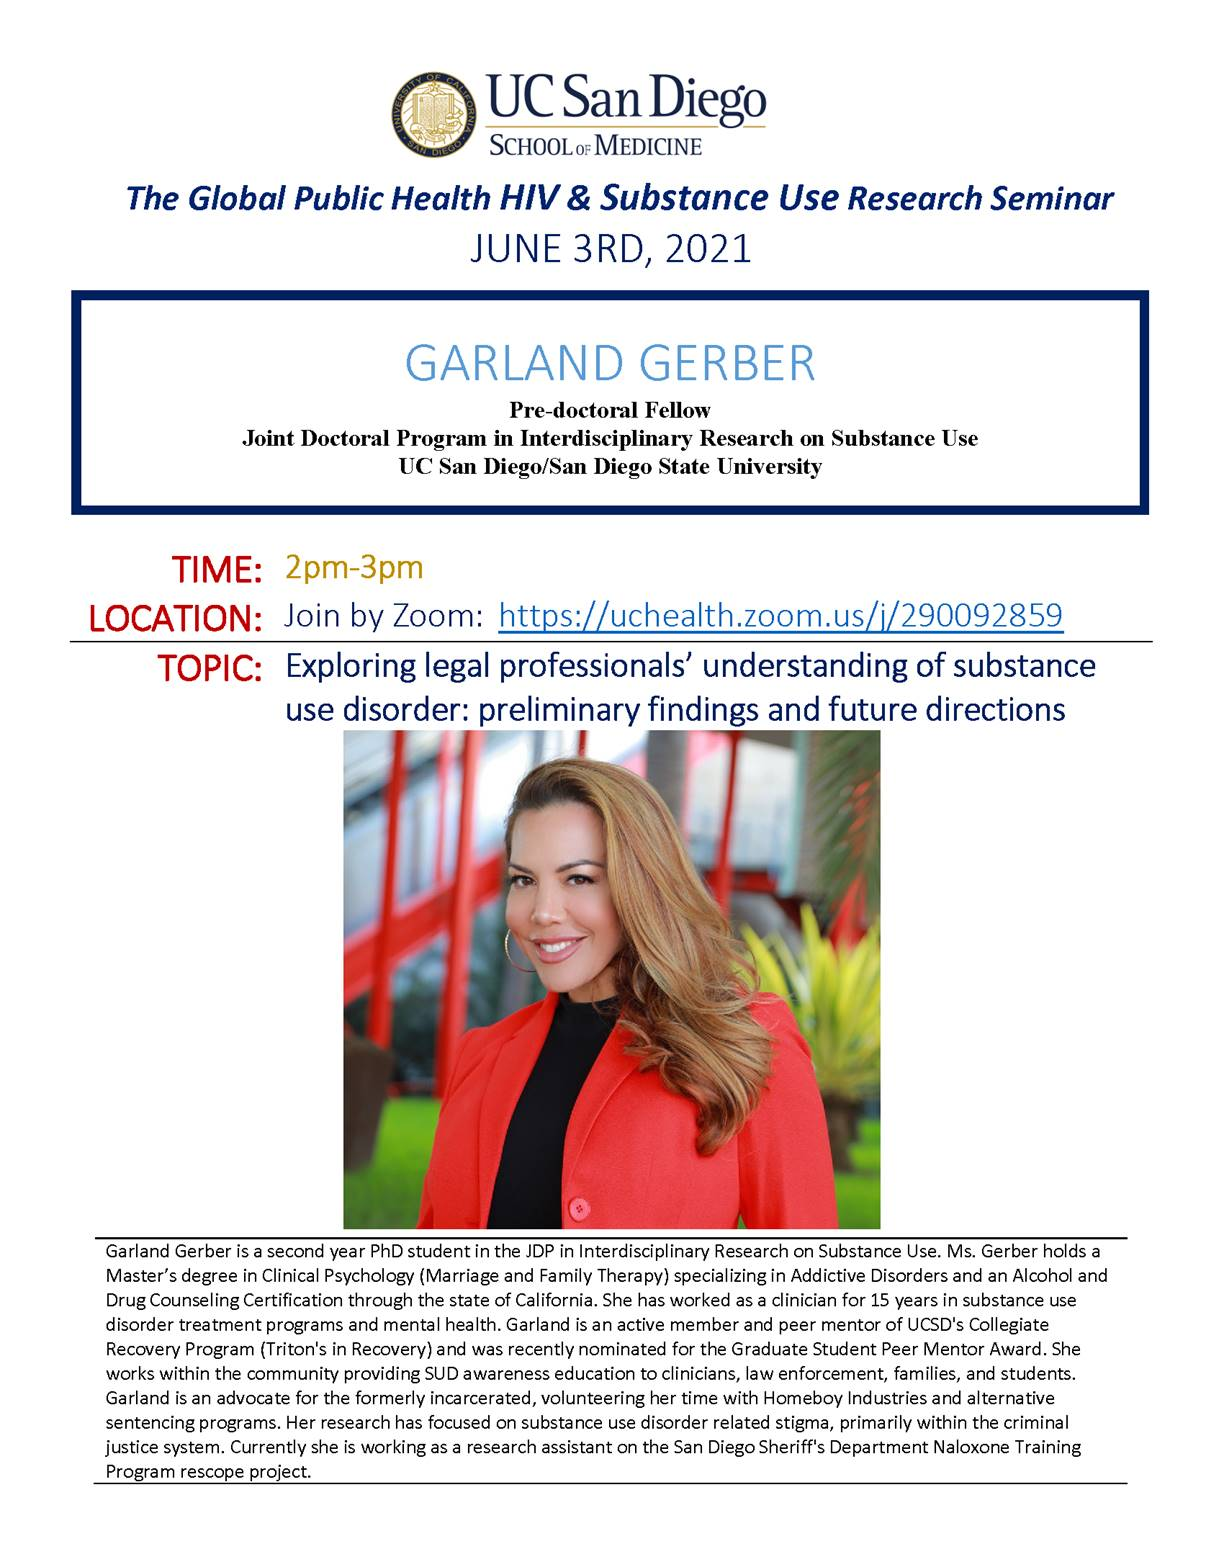 The Global Public Health HIV & Substance Use Research Seminar – Garland Gerber– 6/3/2021 TOPIC:Exploring legal professionals' understanding of substance use disorder: preliminary findings and future directions DATE:June 3rd, 2021 TIME:2:00-3:00pm LOCATION:Zoom Meeting